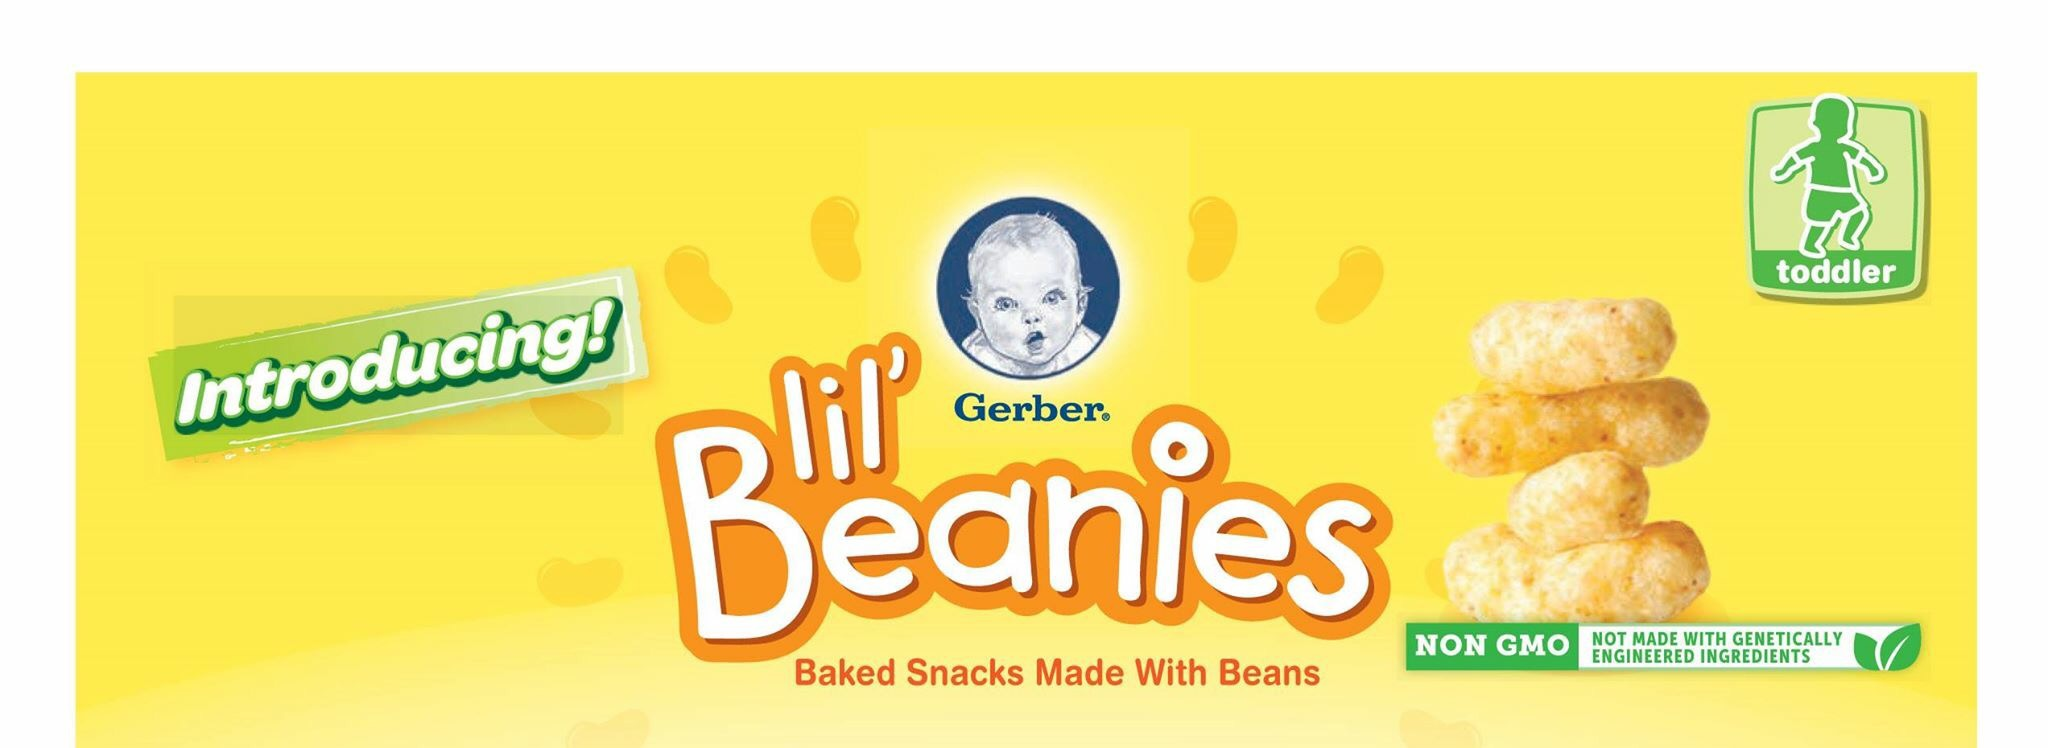 Growing Healthy Together:A Gerber Lil Beanies Rainbow Garden Party for Picky Eaters